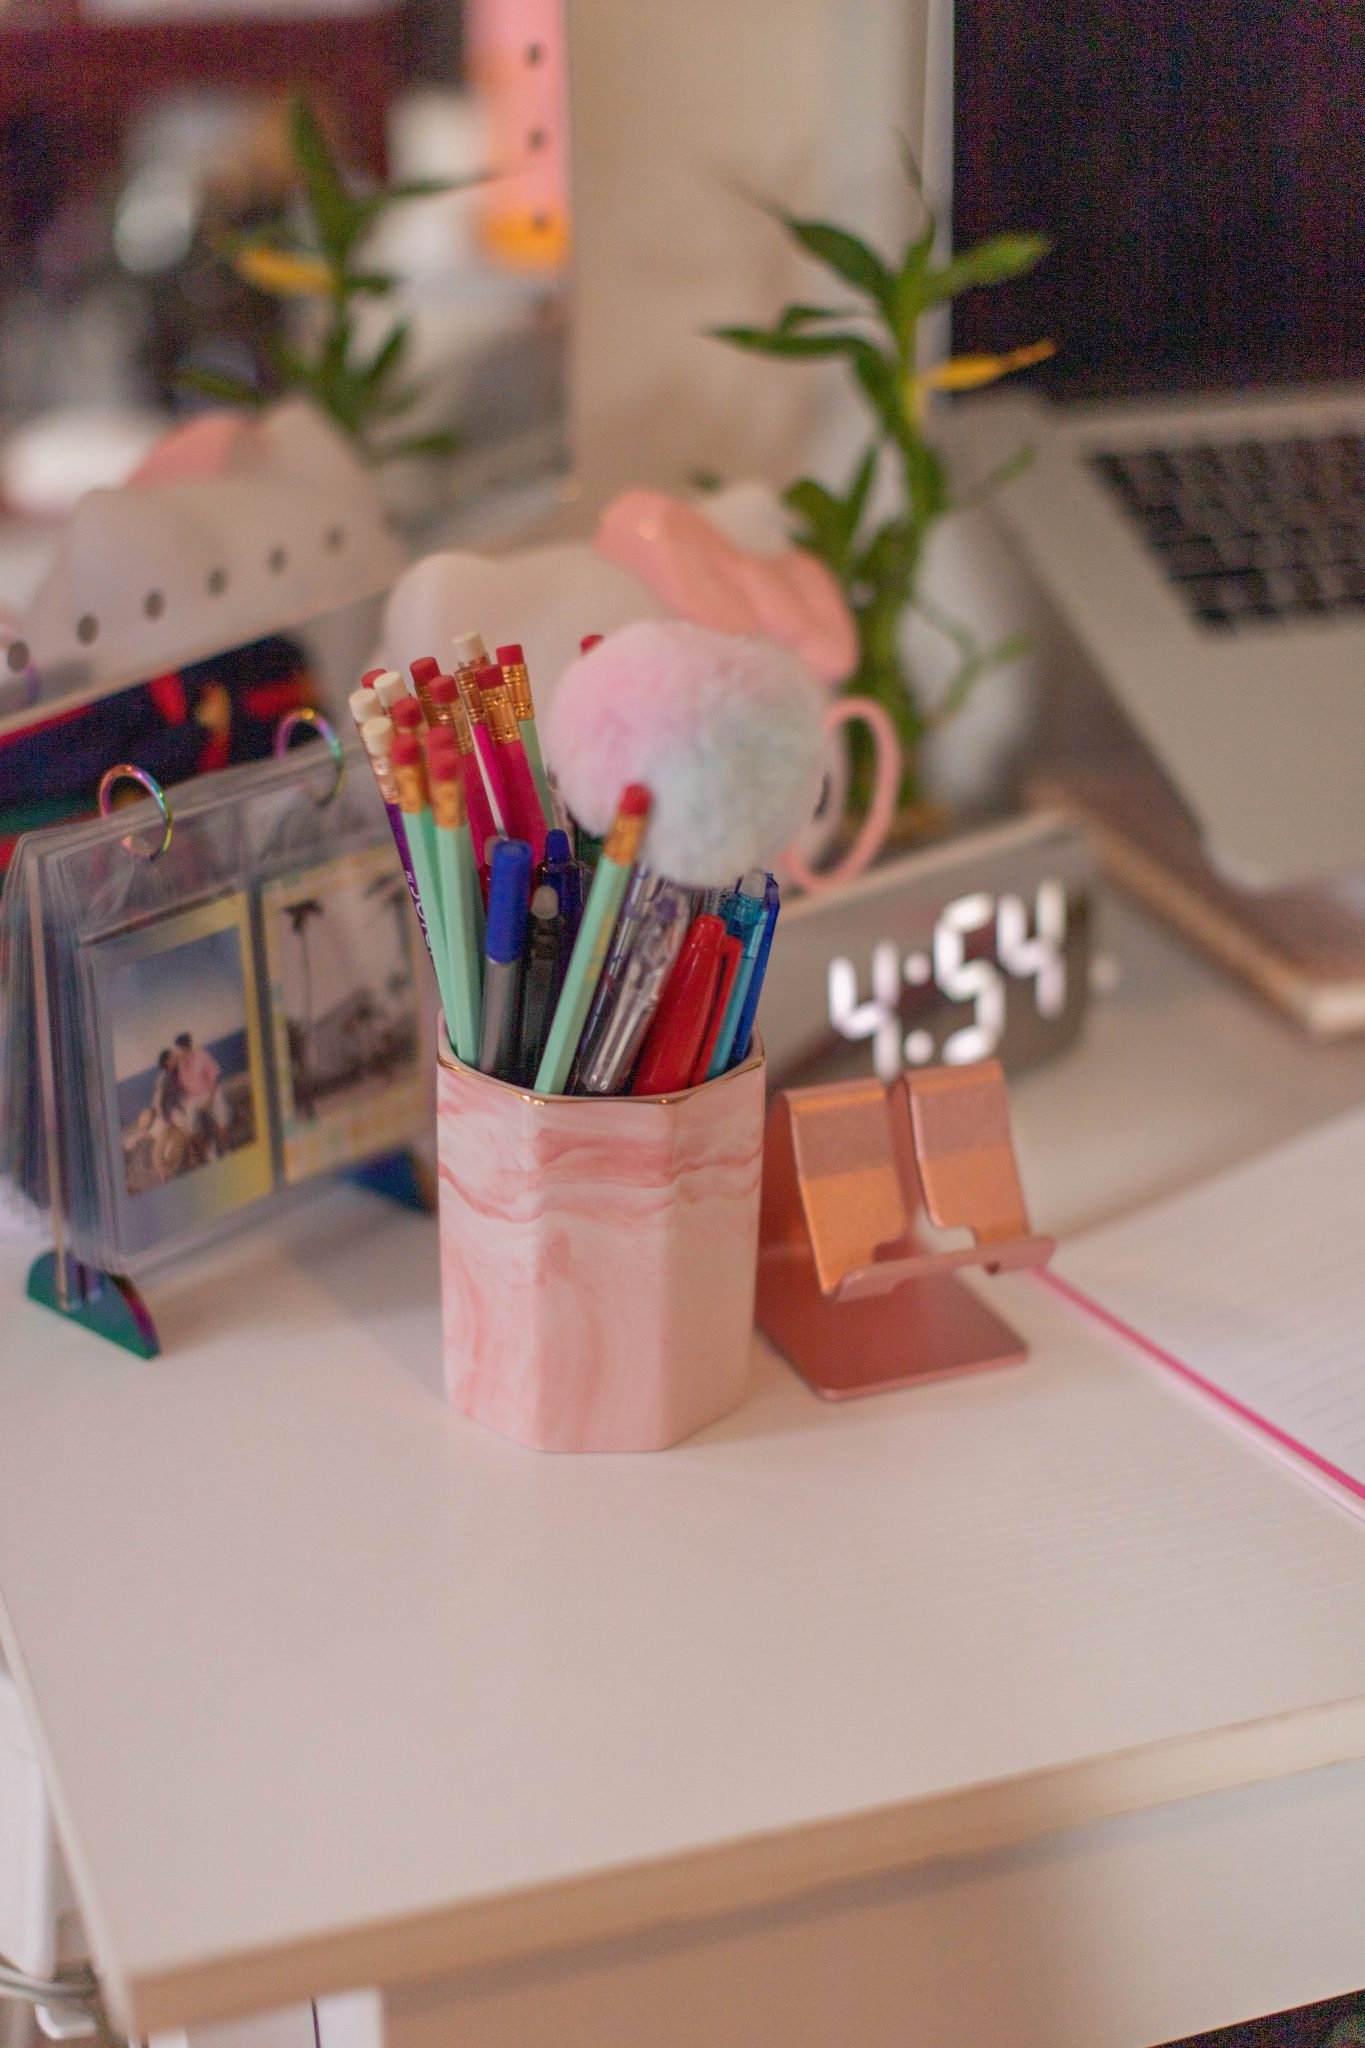 Redecorating My Small Office Space by popular NYC life and style blog, Live Laugh Linda: image of small office space in New York City apartment